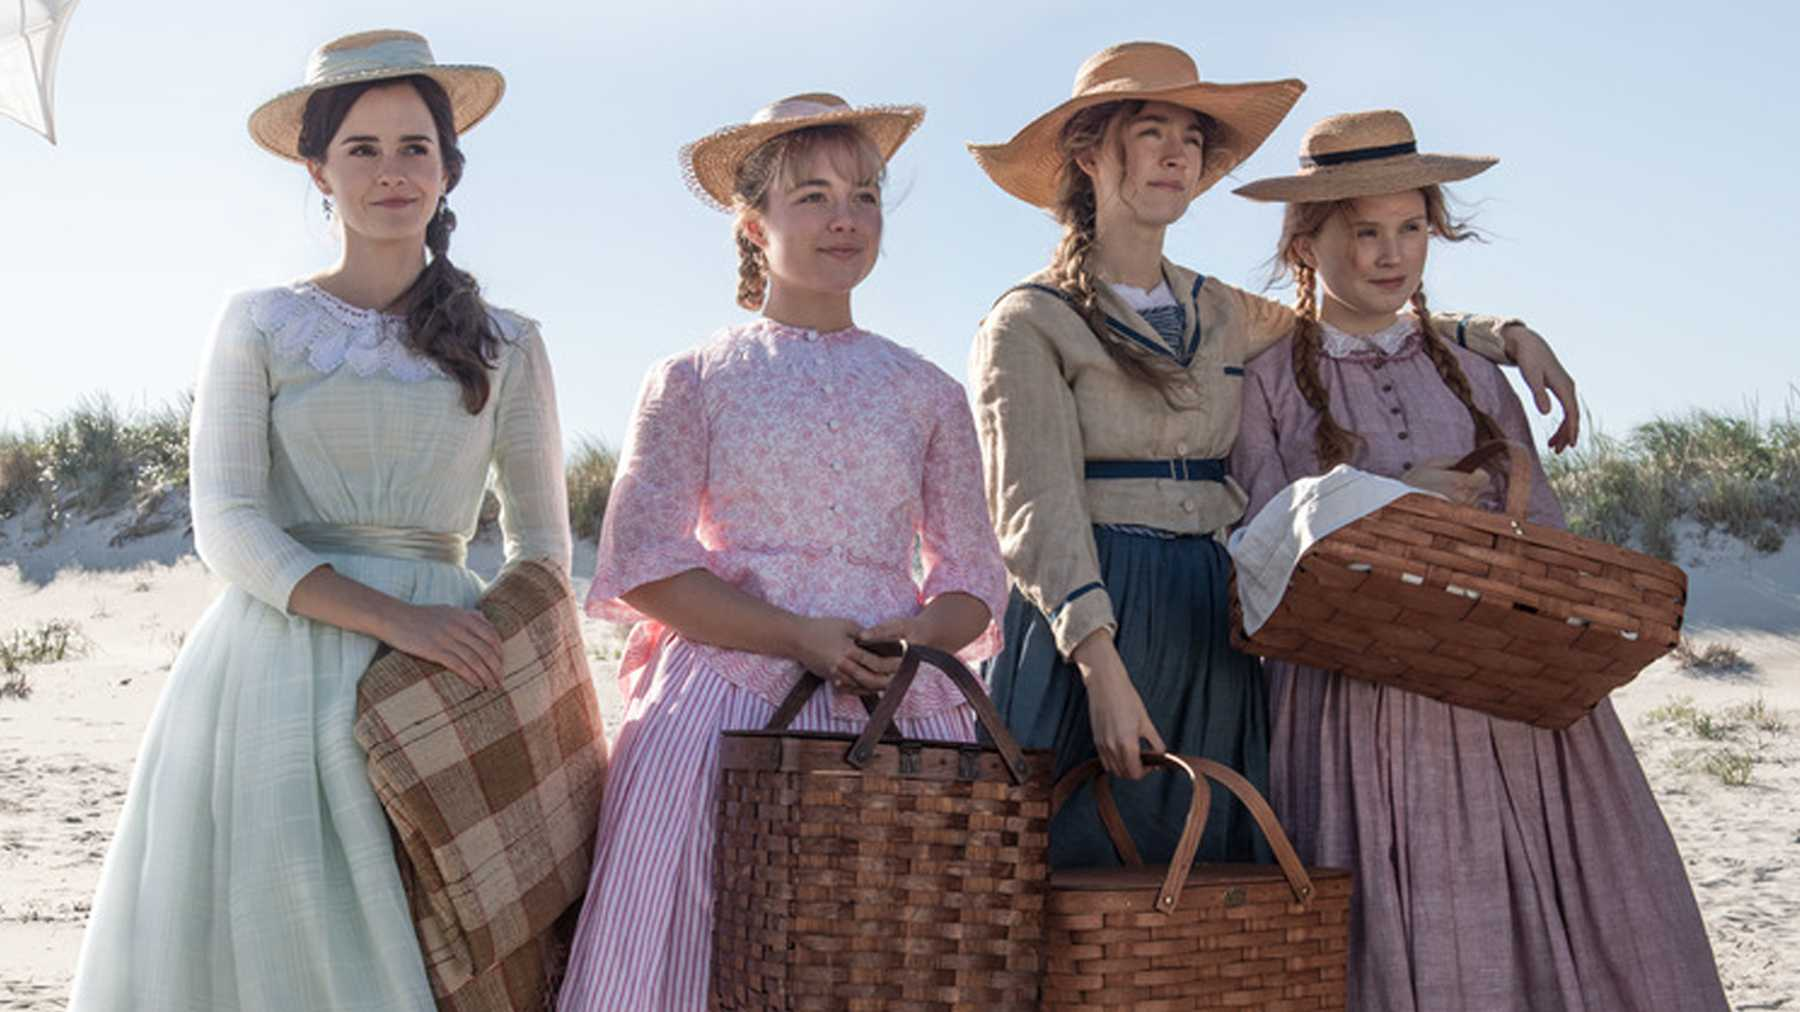 El remake Little Women cruza los 100 mdd en box office internacional